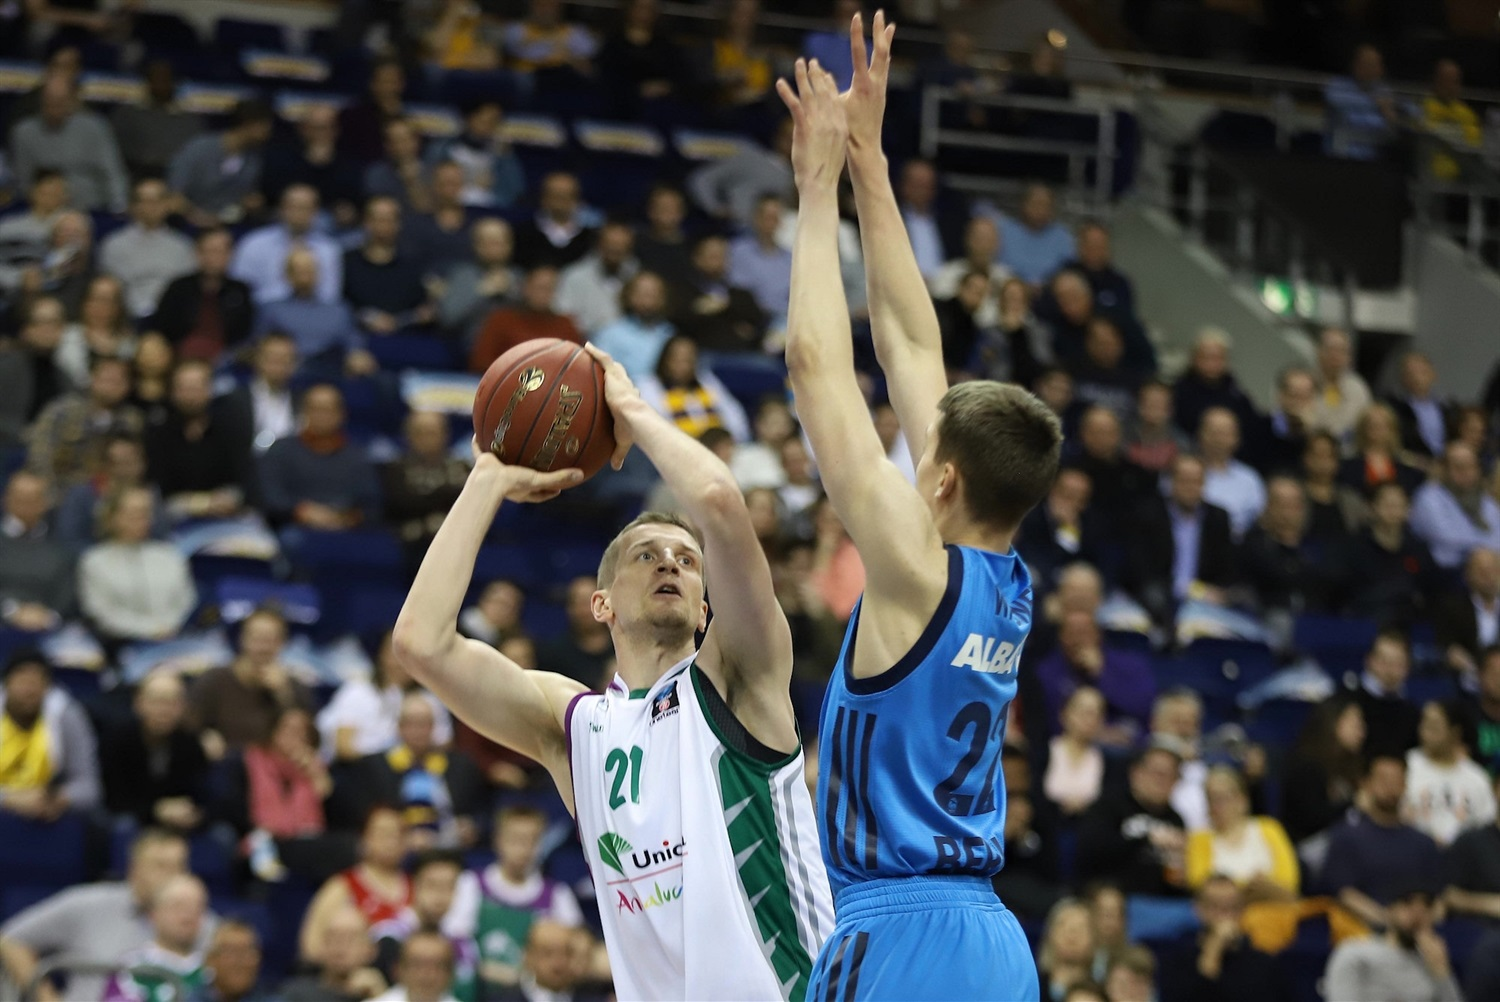 Adam Waczynski - Unicaja Malaga (photo Andreas Knopf - ALBA) - EC18